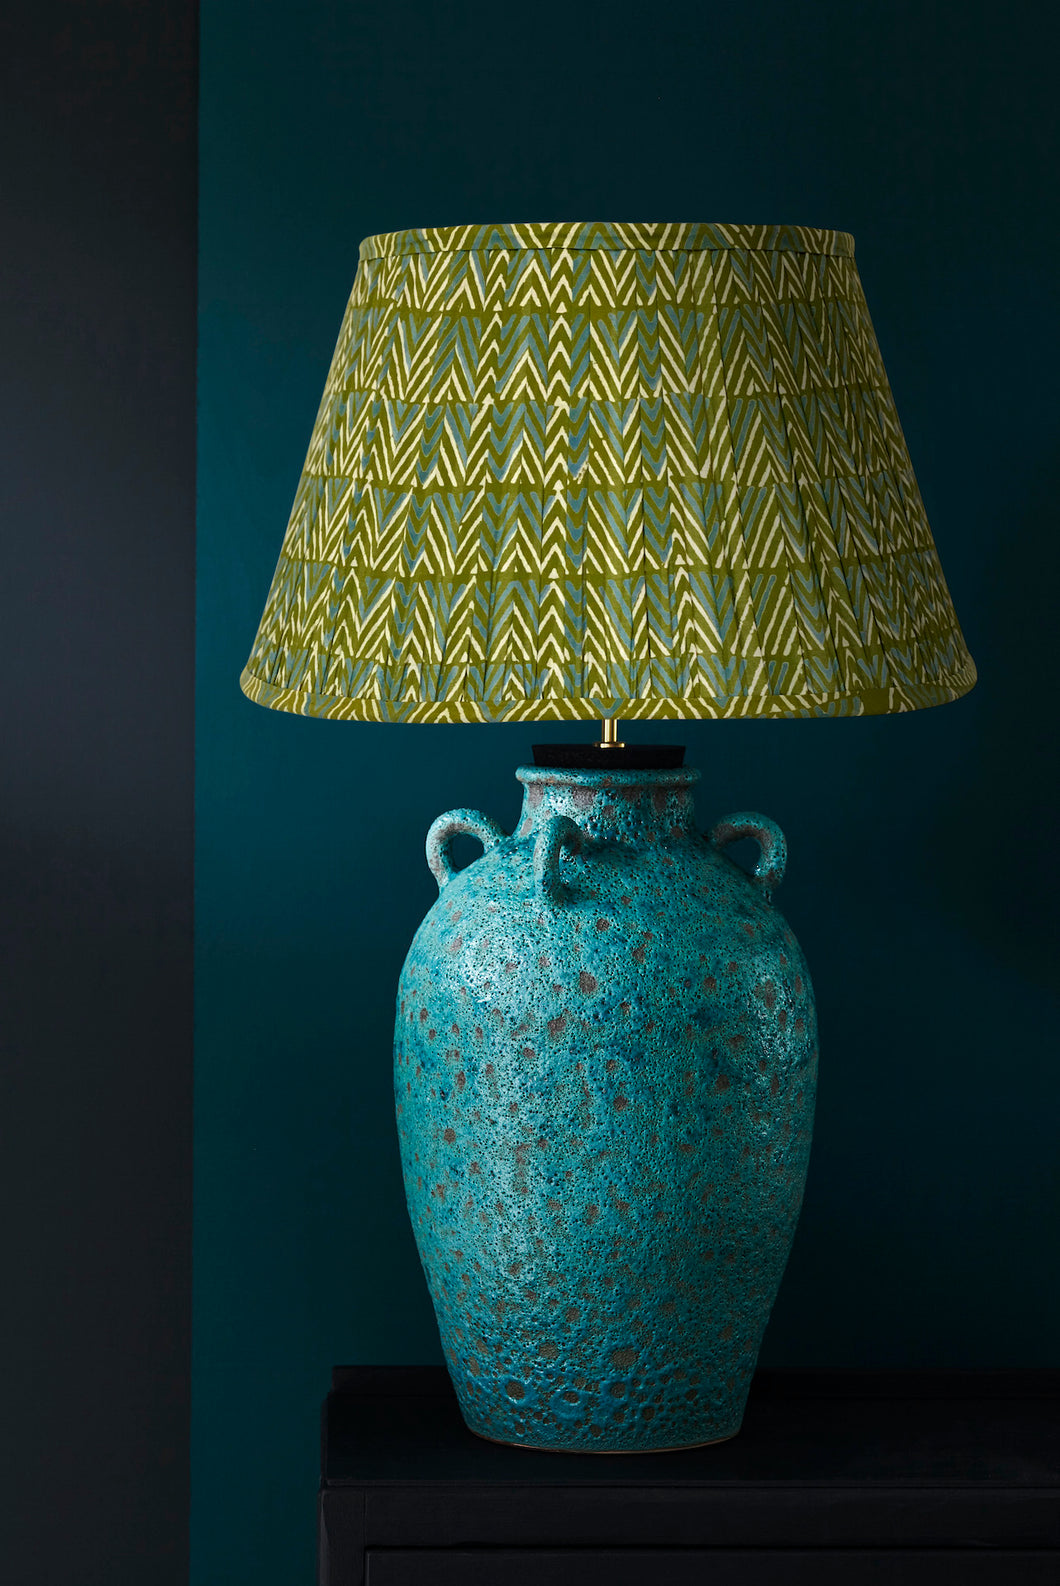 Keith Lamp and Green Blue Chevron lampshade